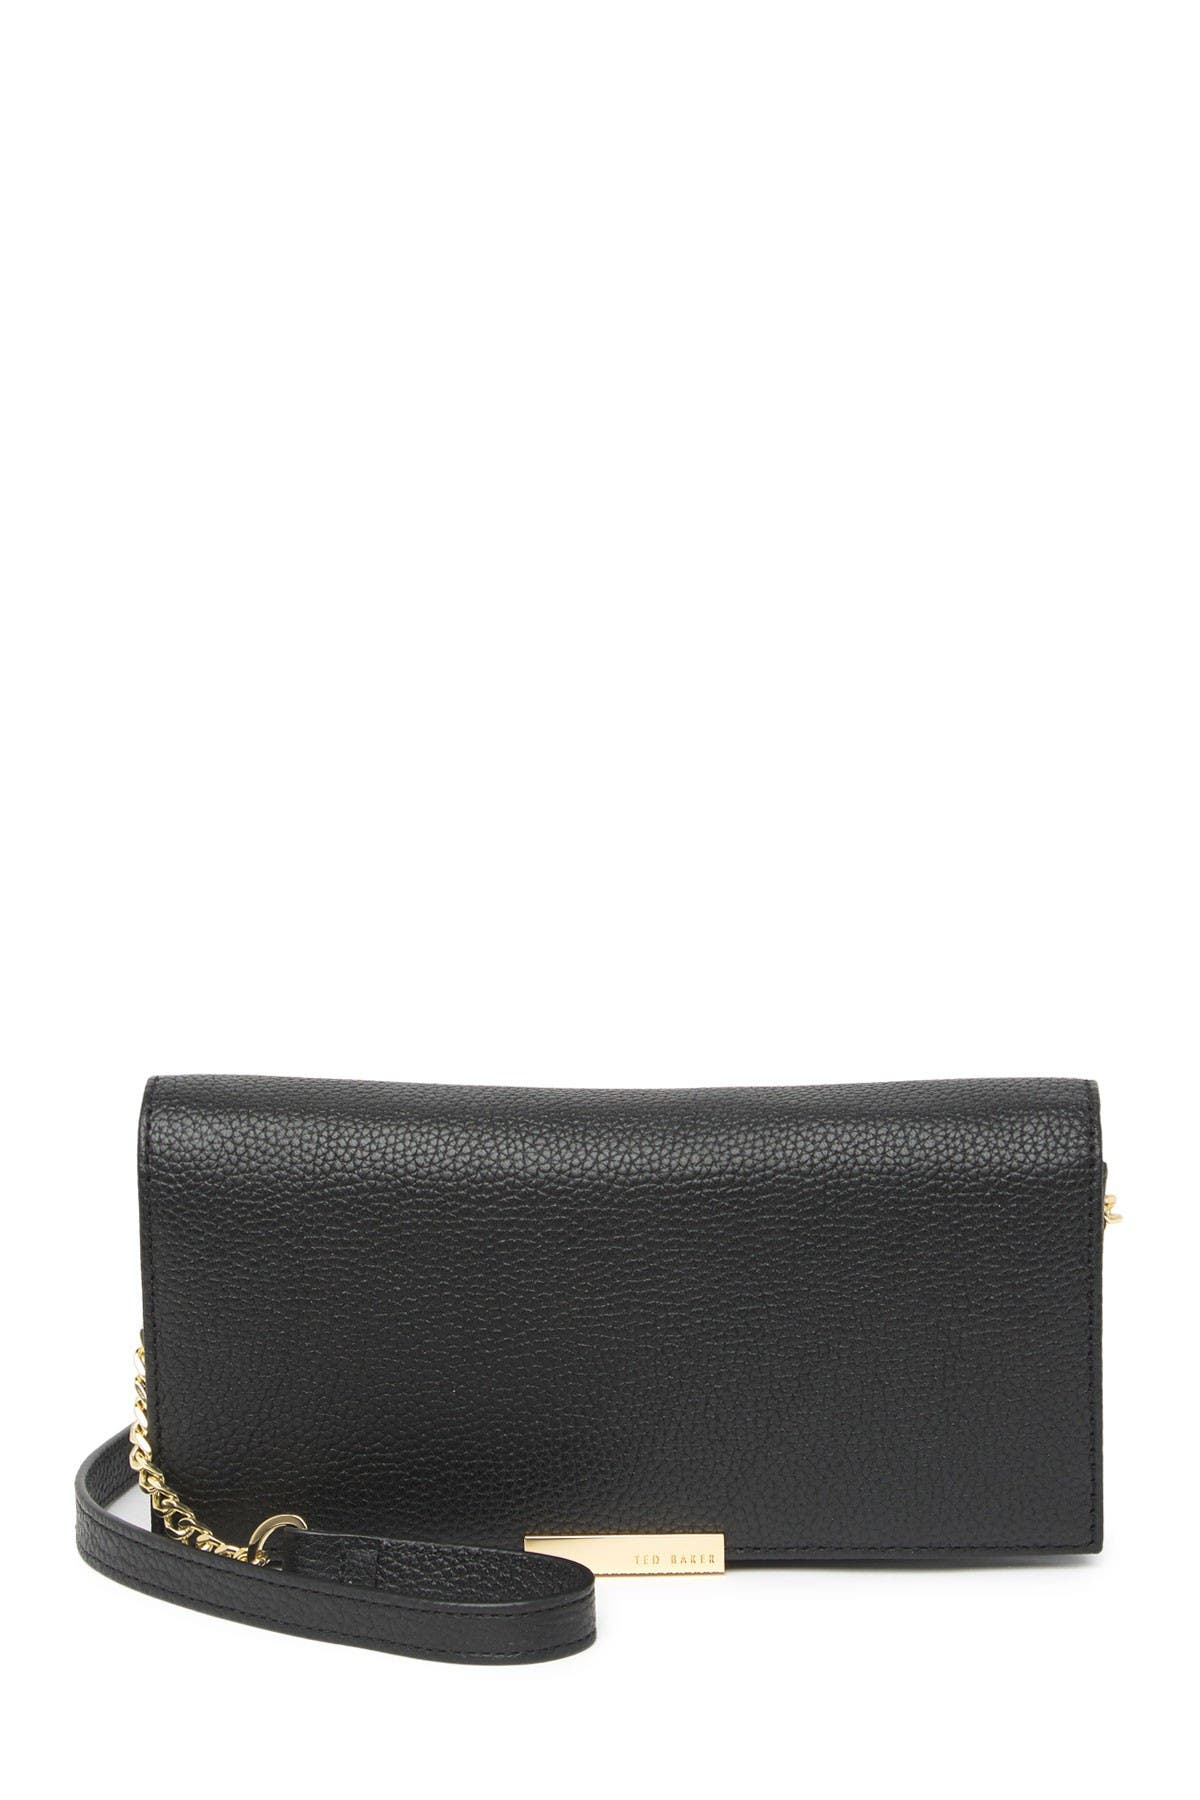 Image of Ted Baker London Shazdeh Leather Wallet on a Chain